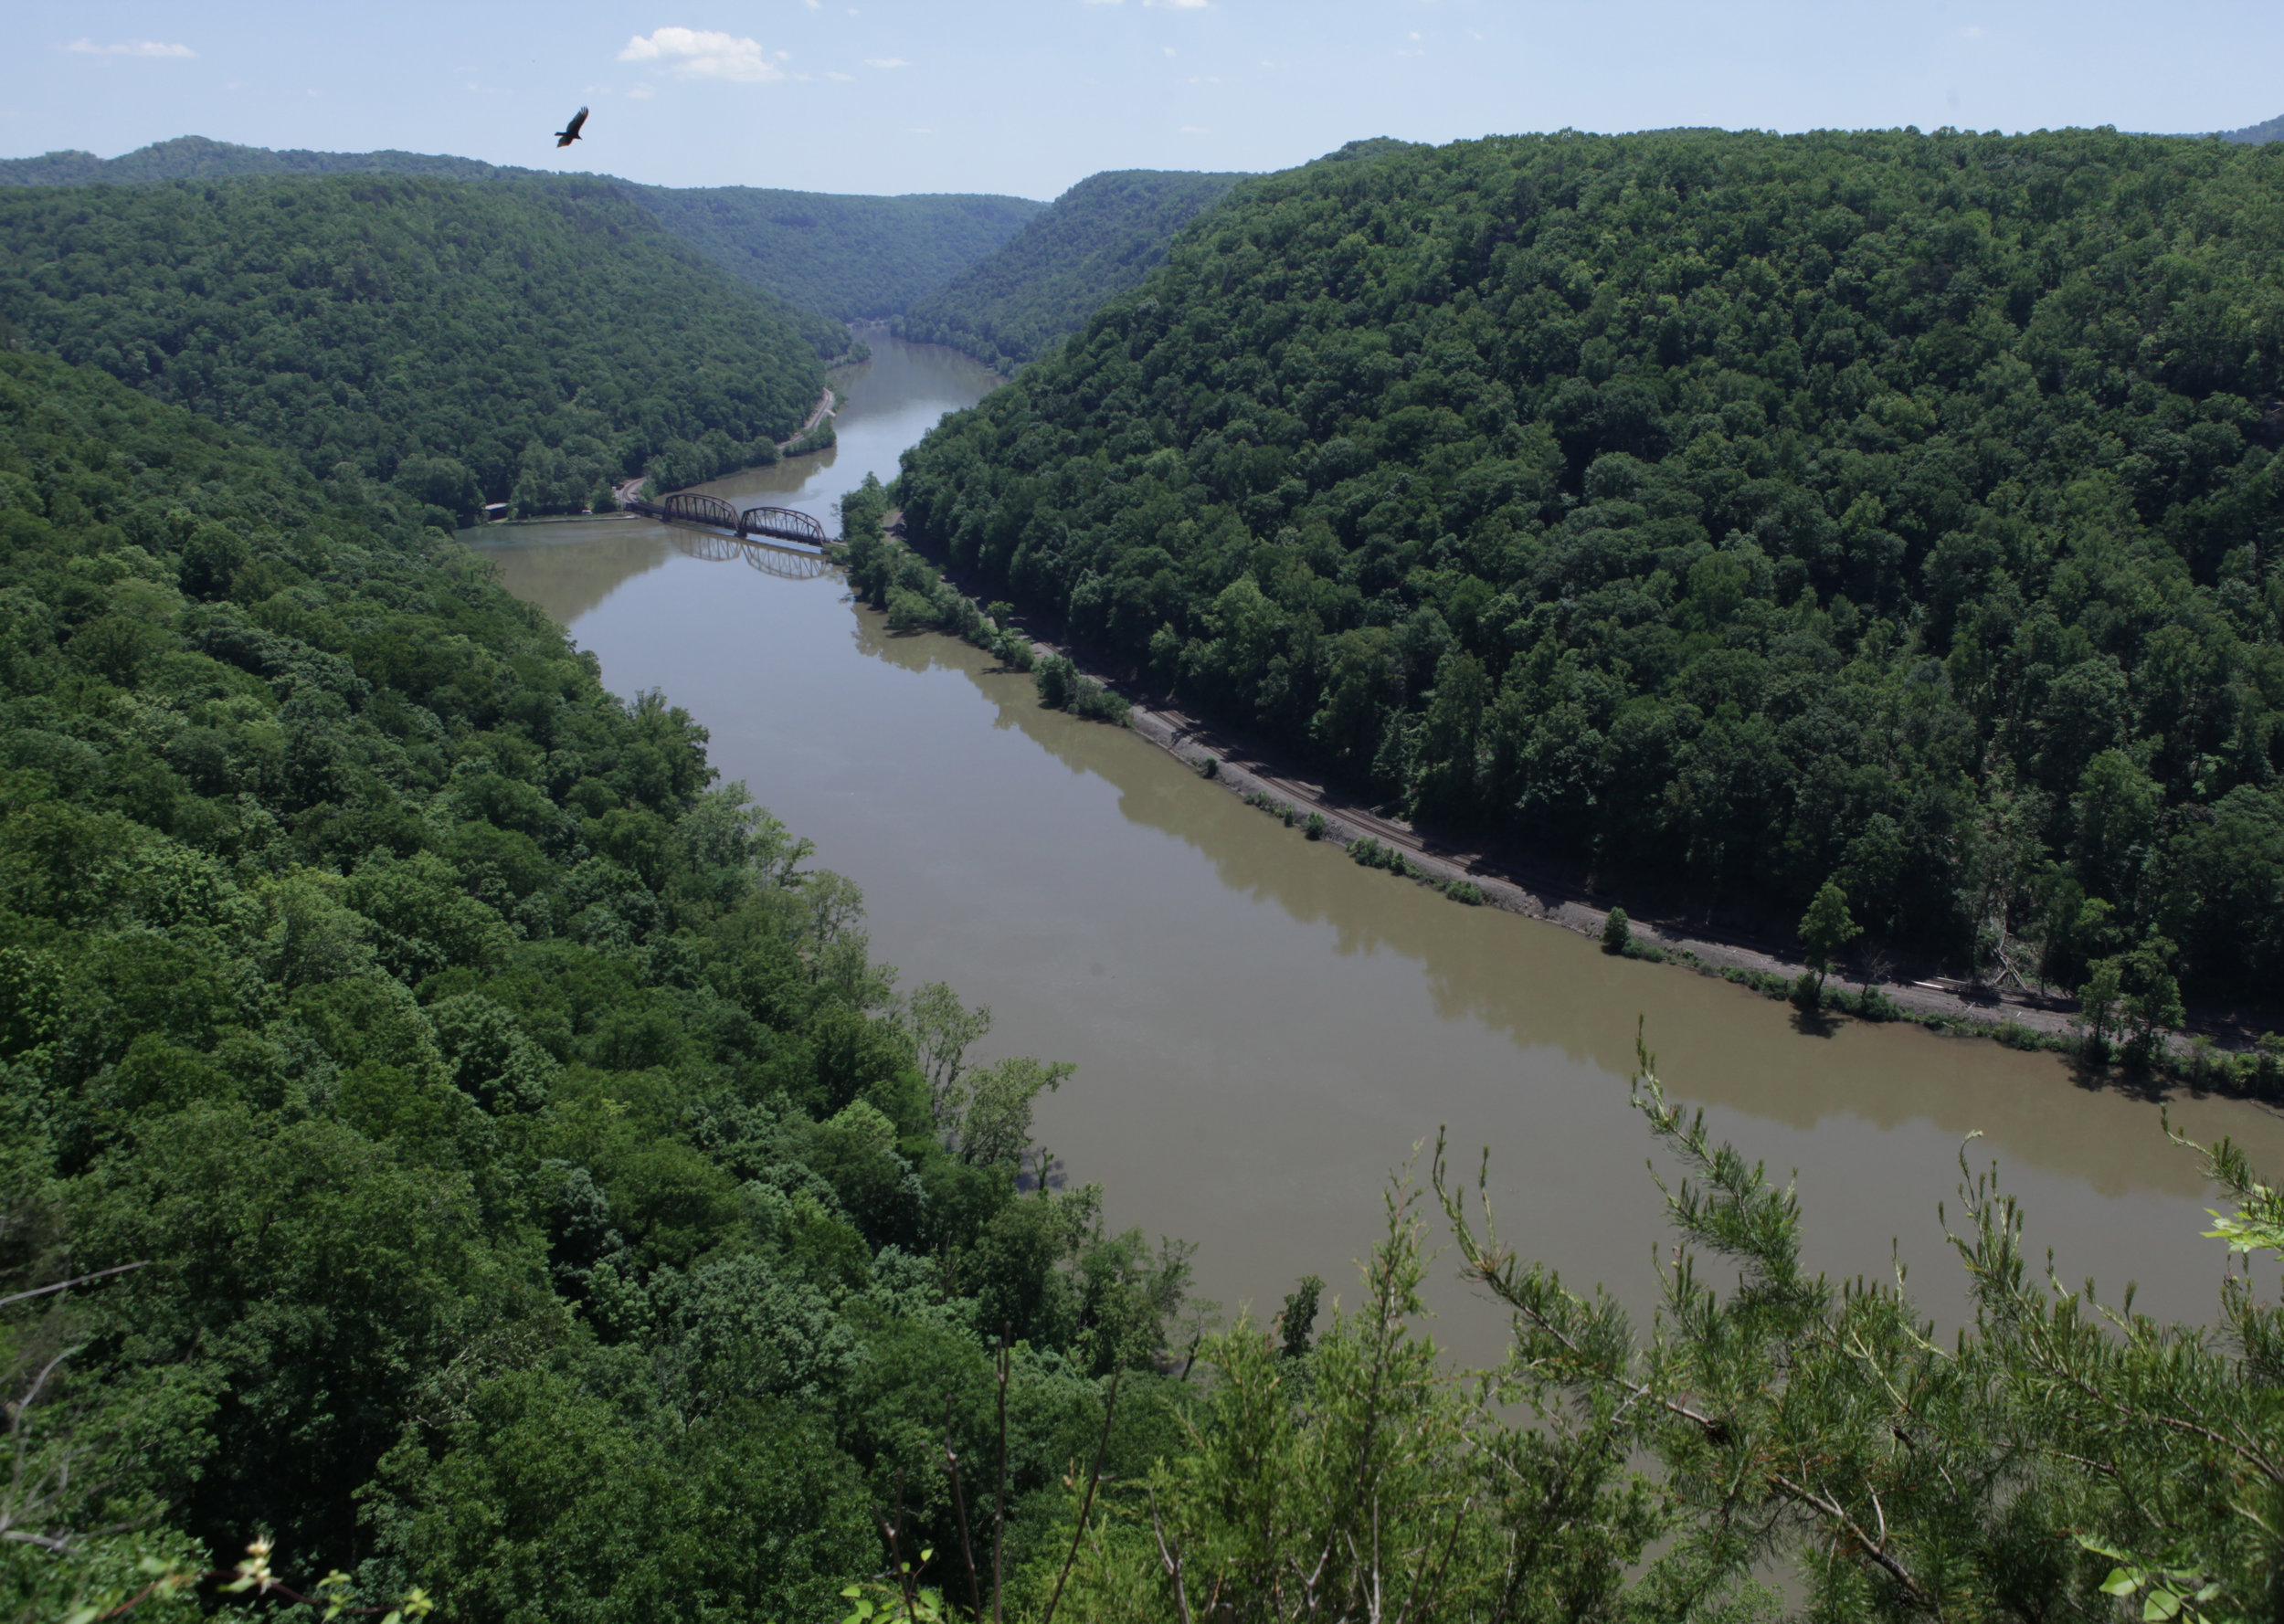 The New River seen from Hawks Nest State Park near Ansted, West Virginia.